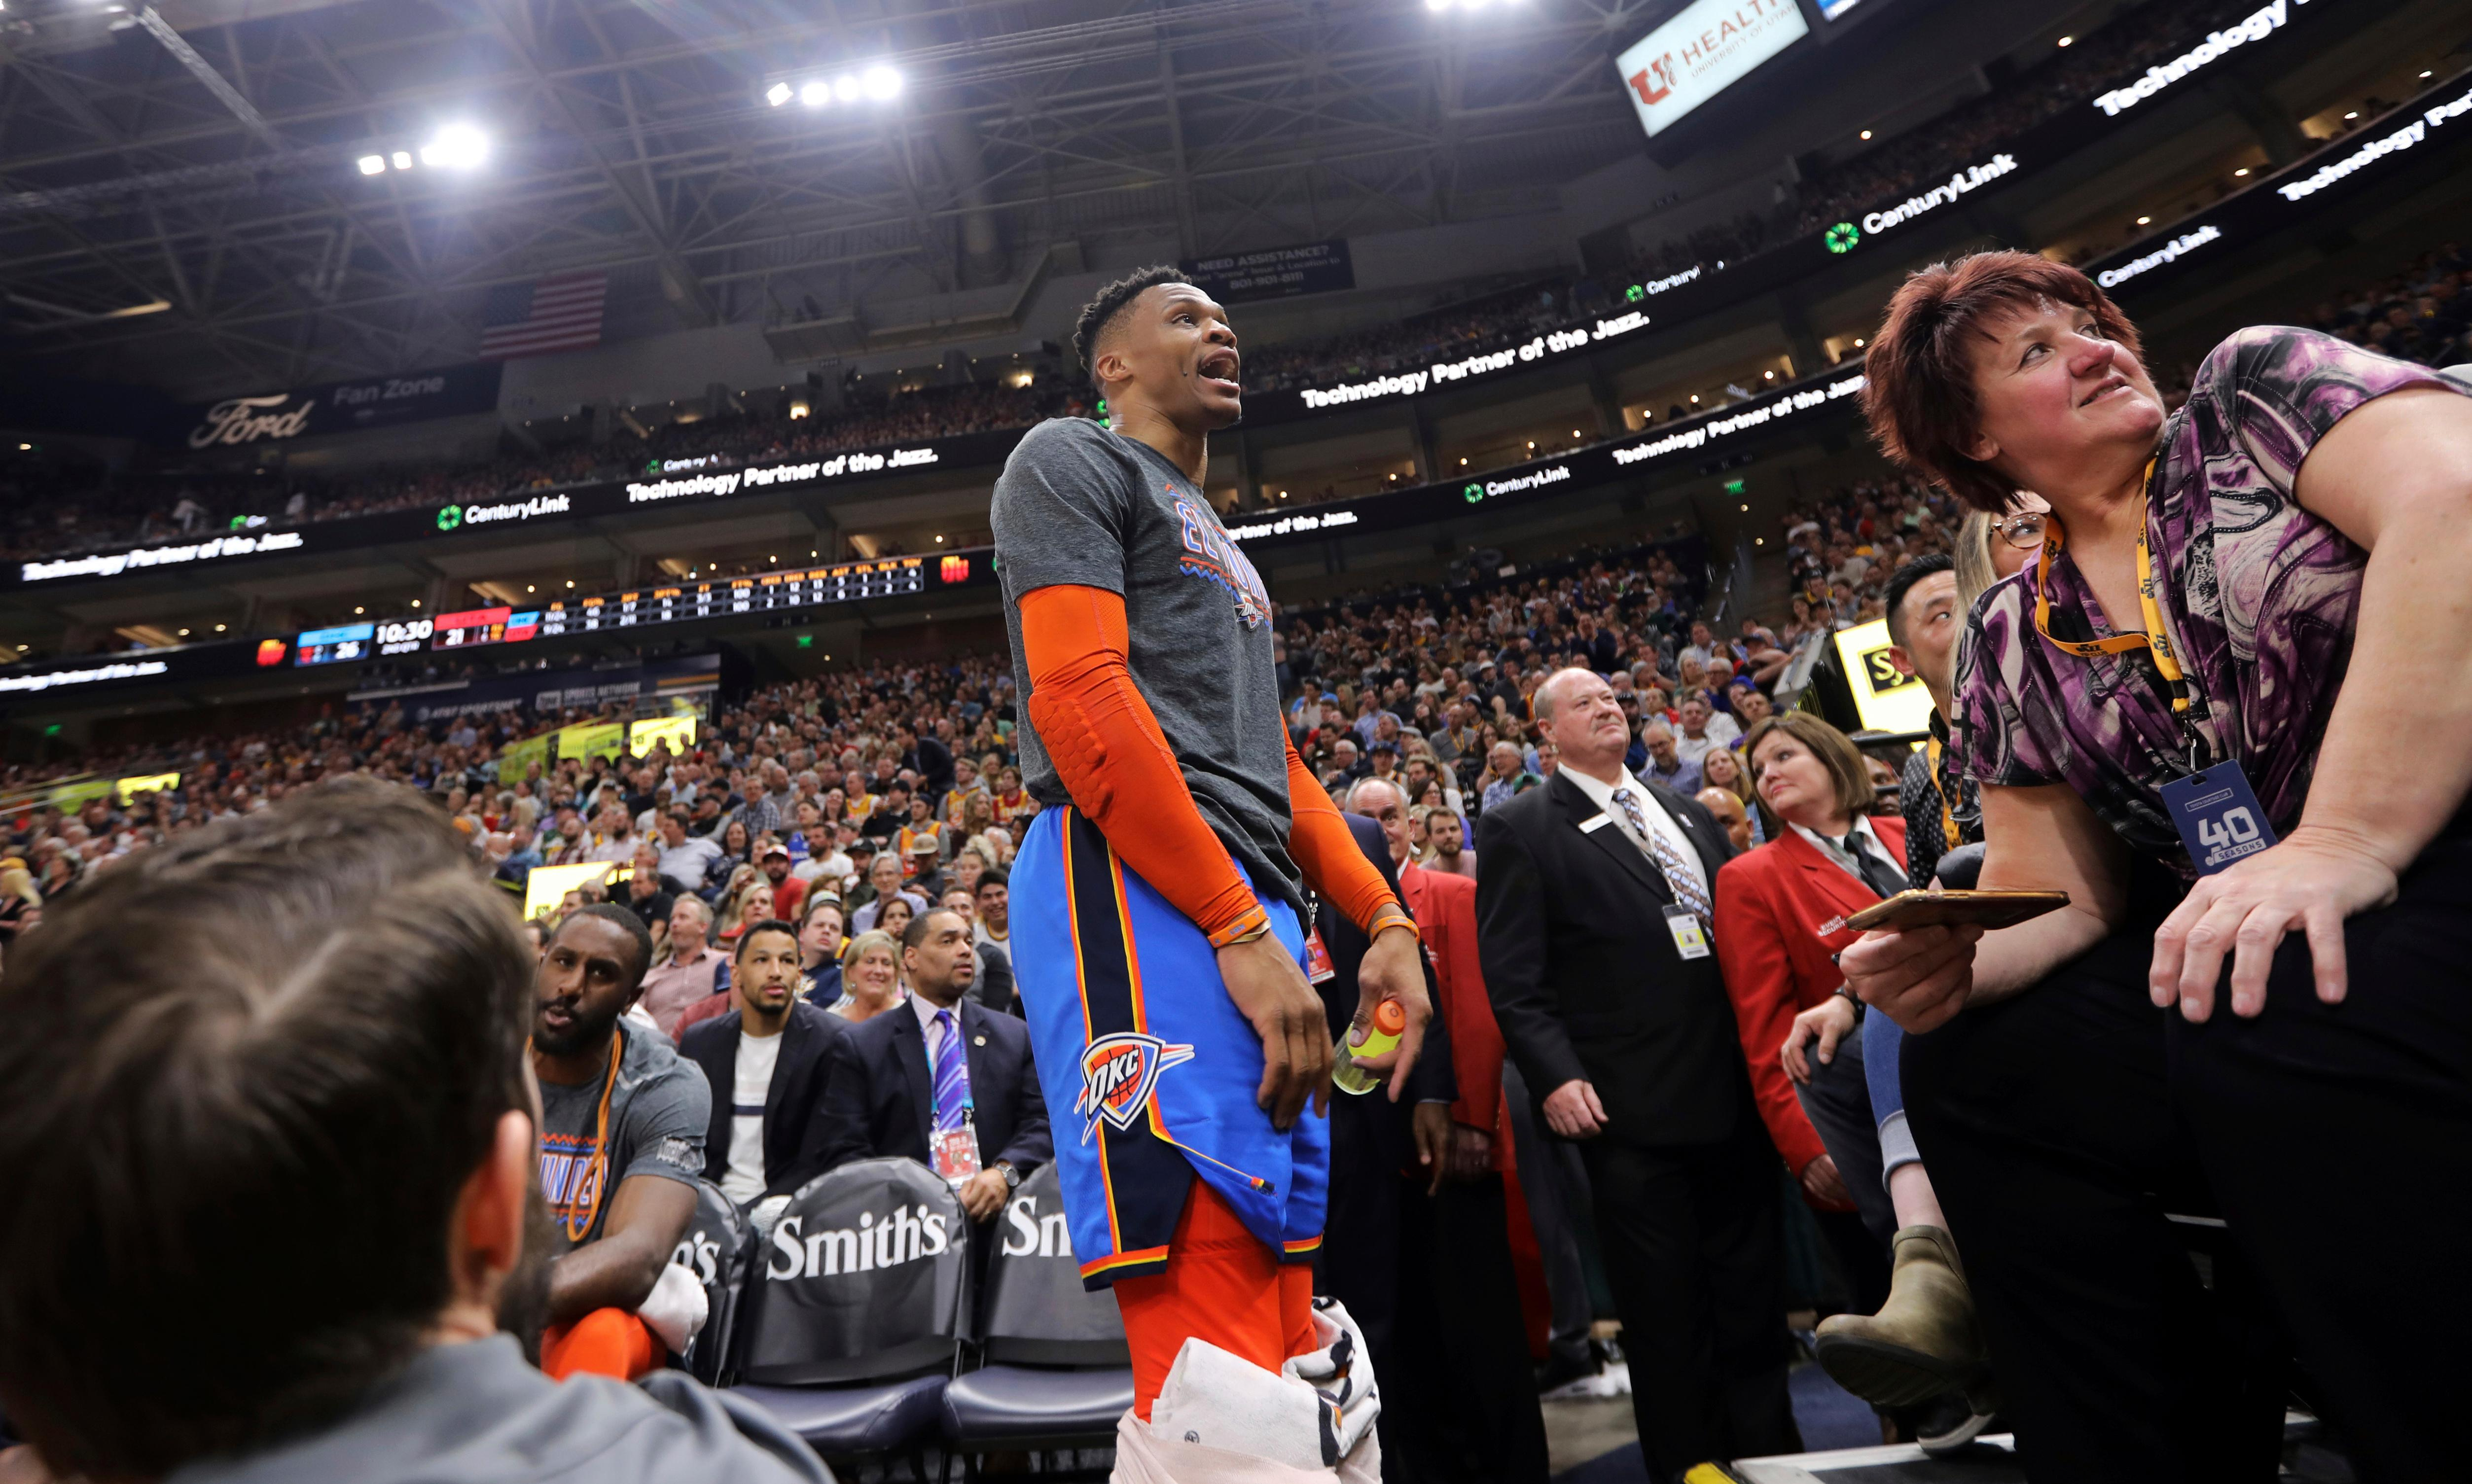 When it comes to racially abusive fans, the NBA has a Utah problem